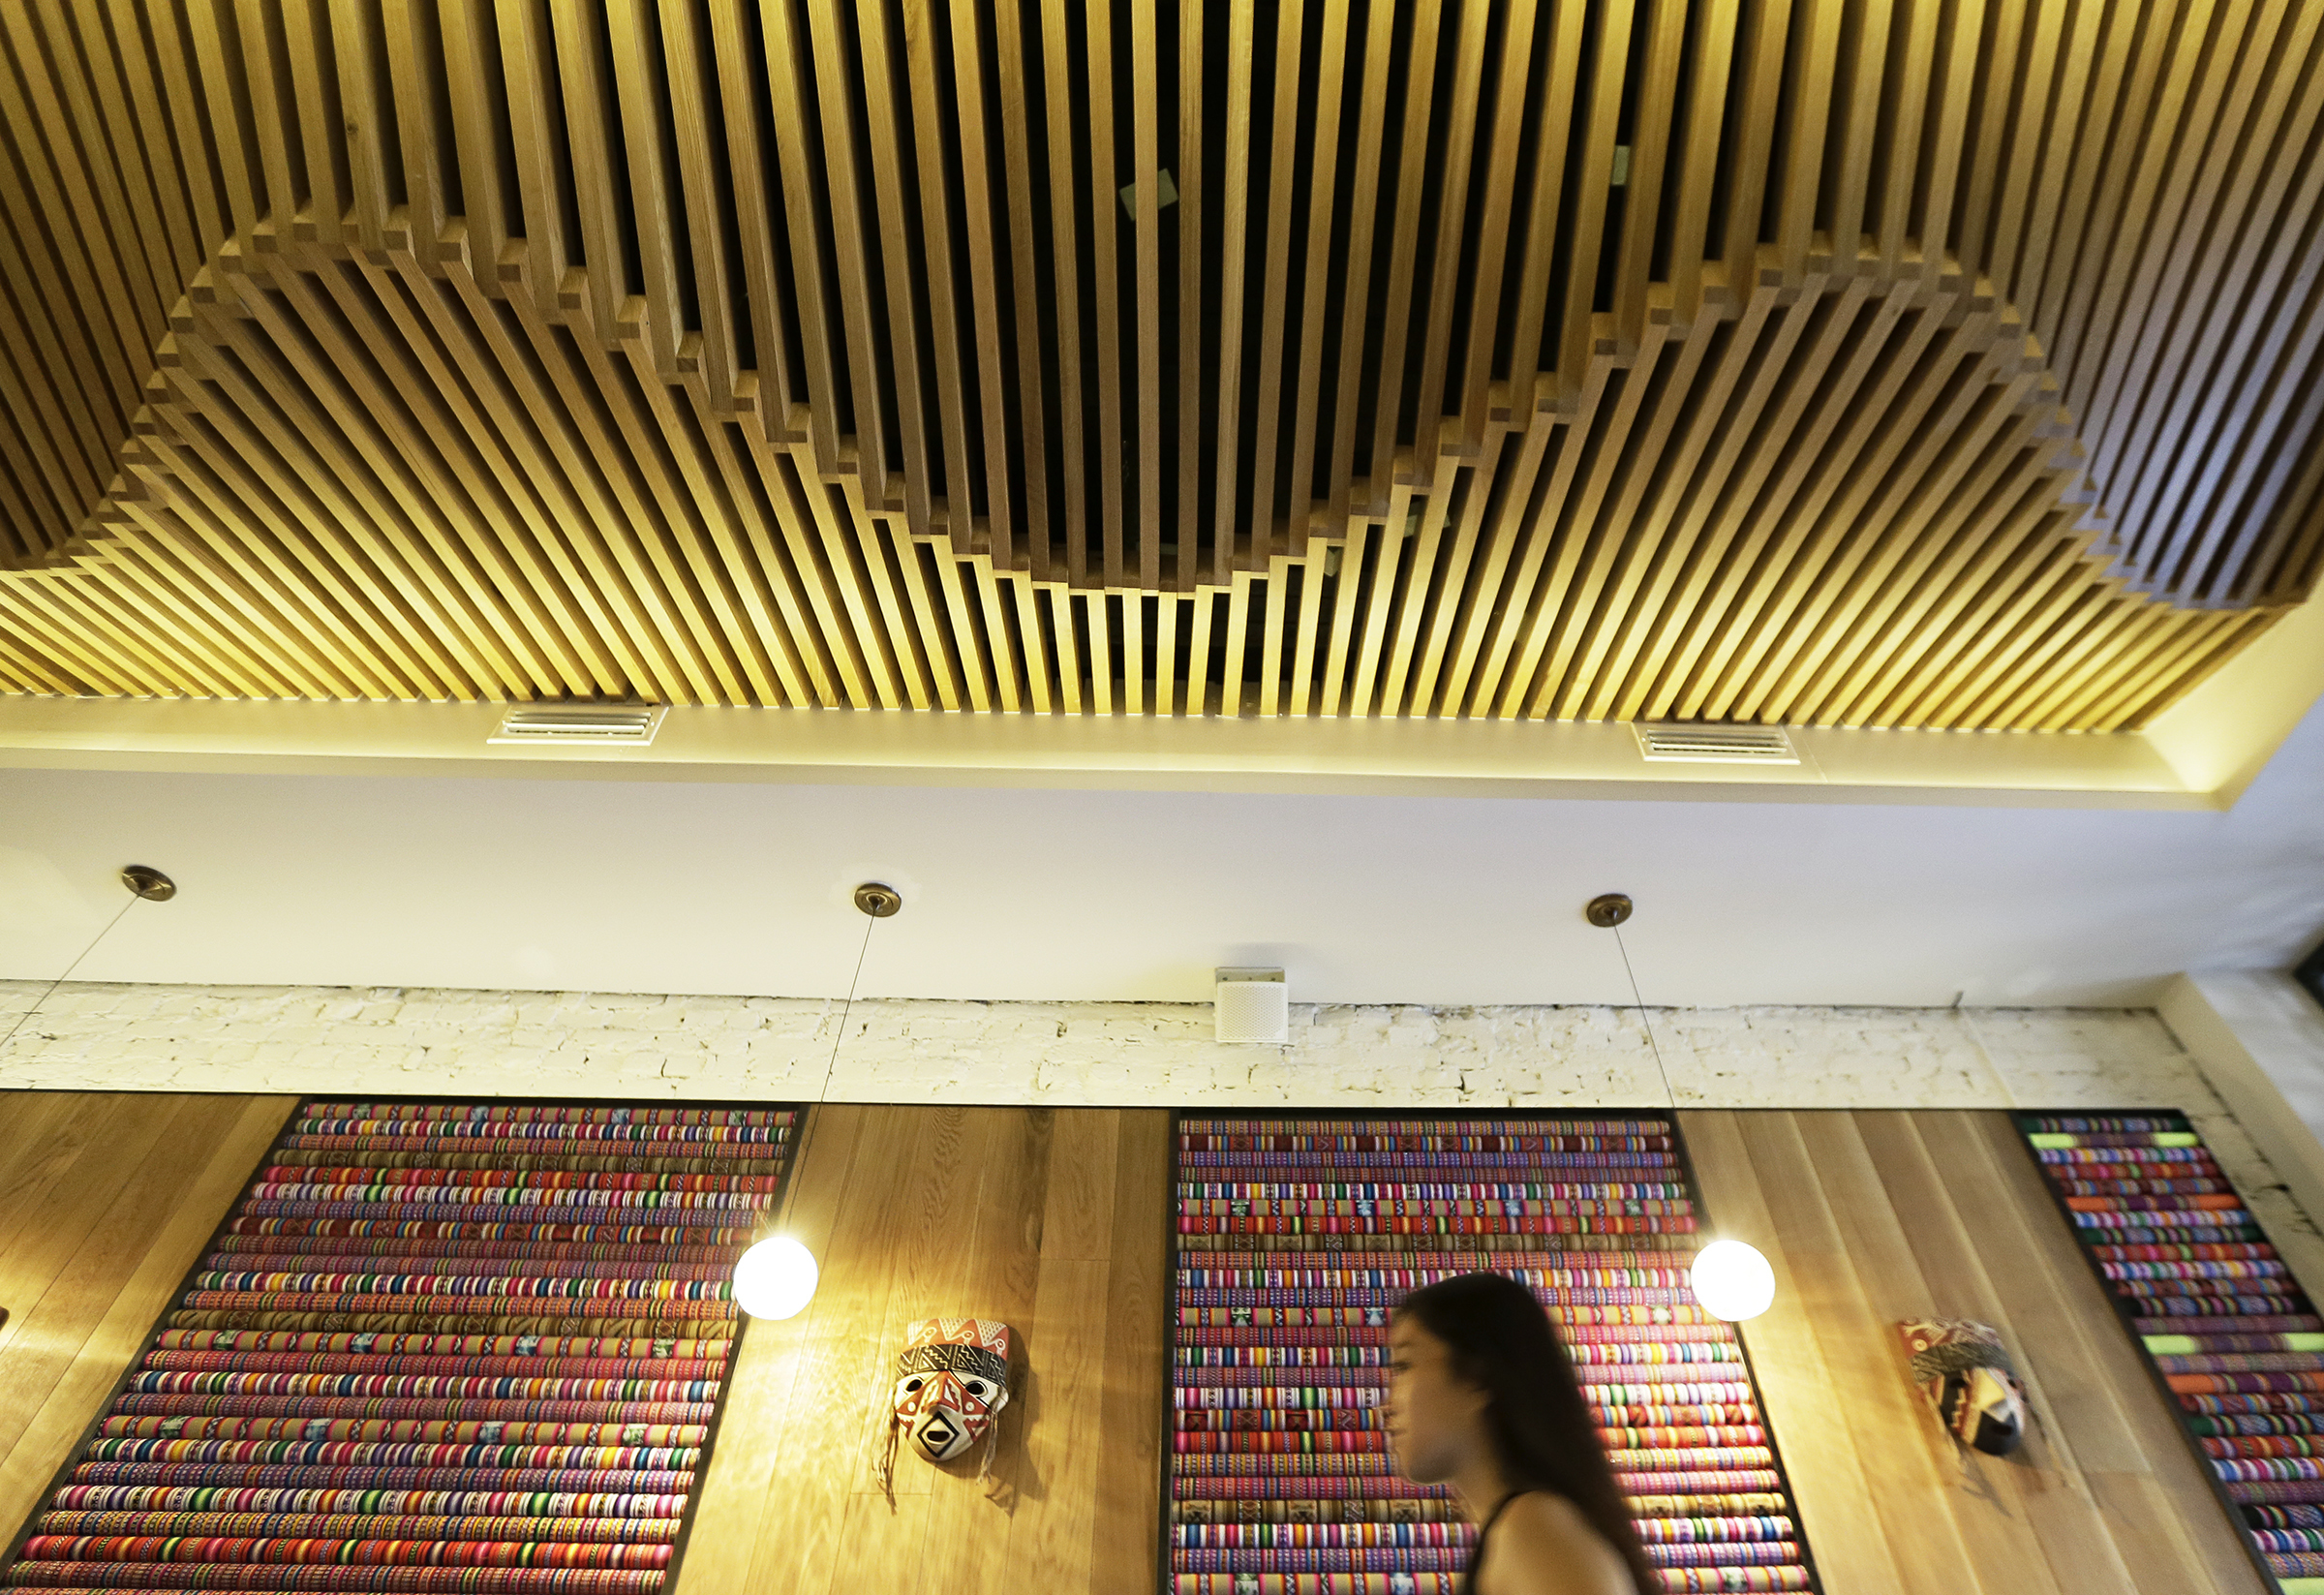 The undulating wood ceiling and fabric walls in the bar area at Vista Peru evoke signature images of the South American country.